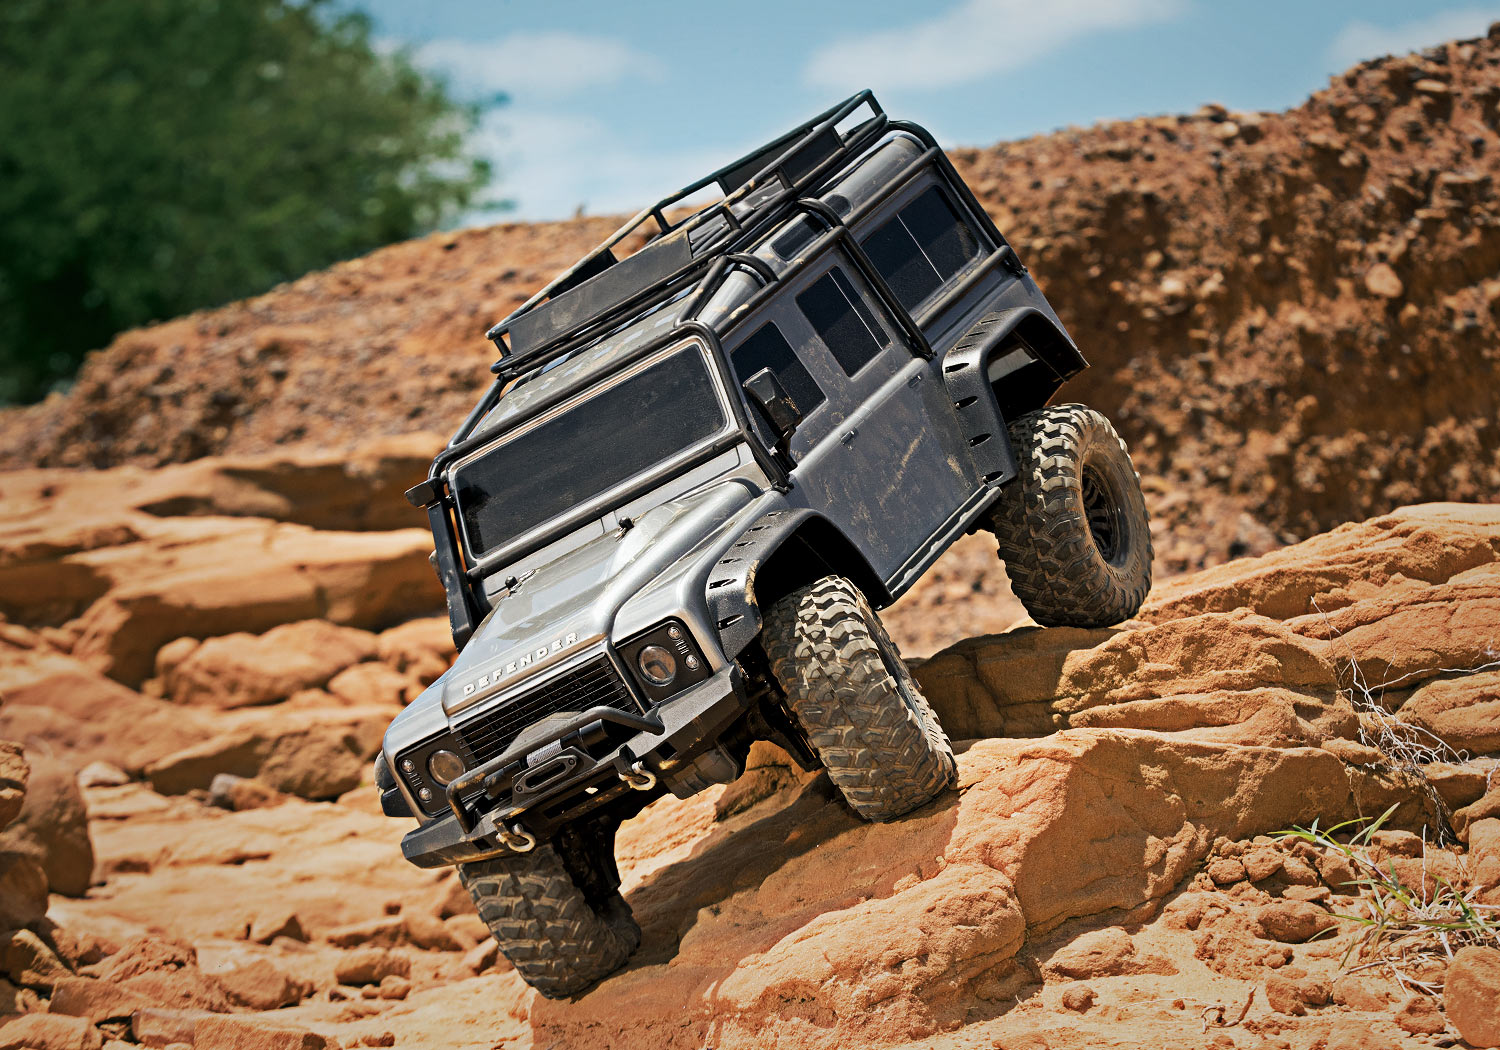 Traxxas Trx 4 Scale Trail Crawler Project 3a New Driving Light Wiring Up Grade Australian Land Rover In Action